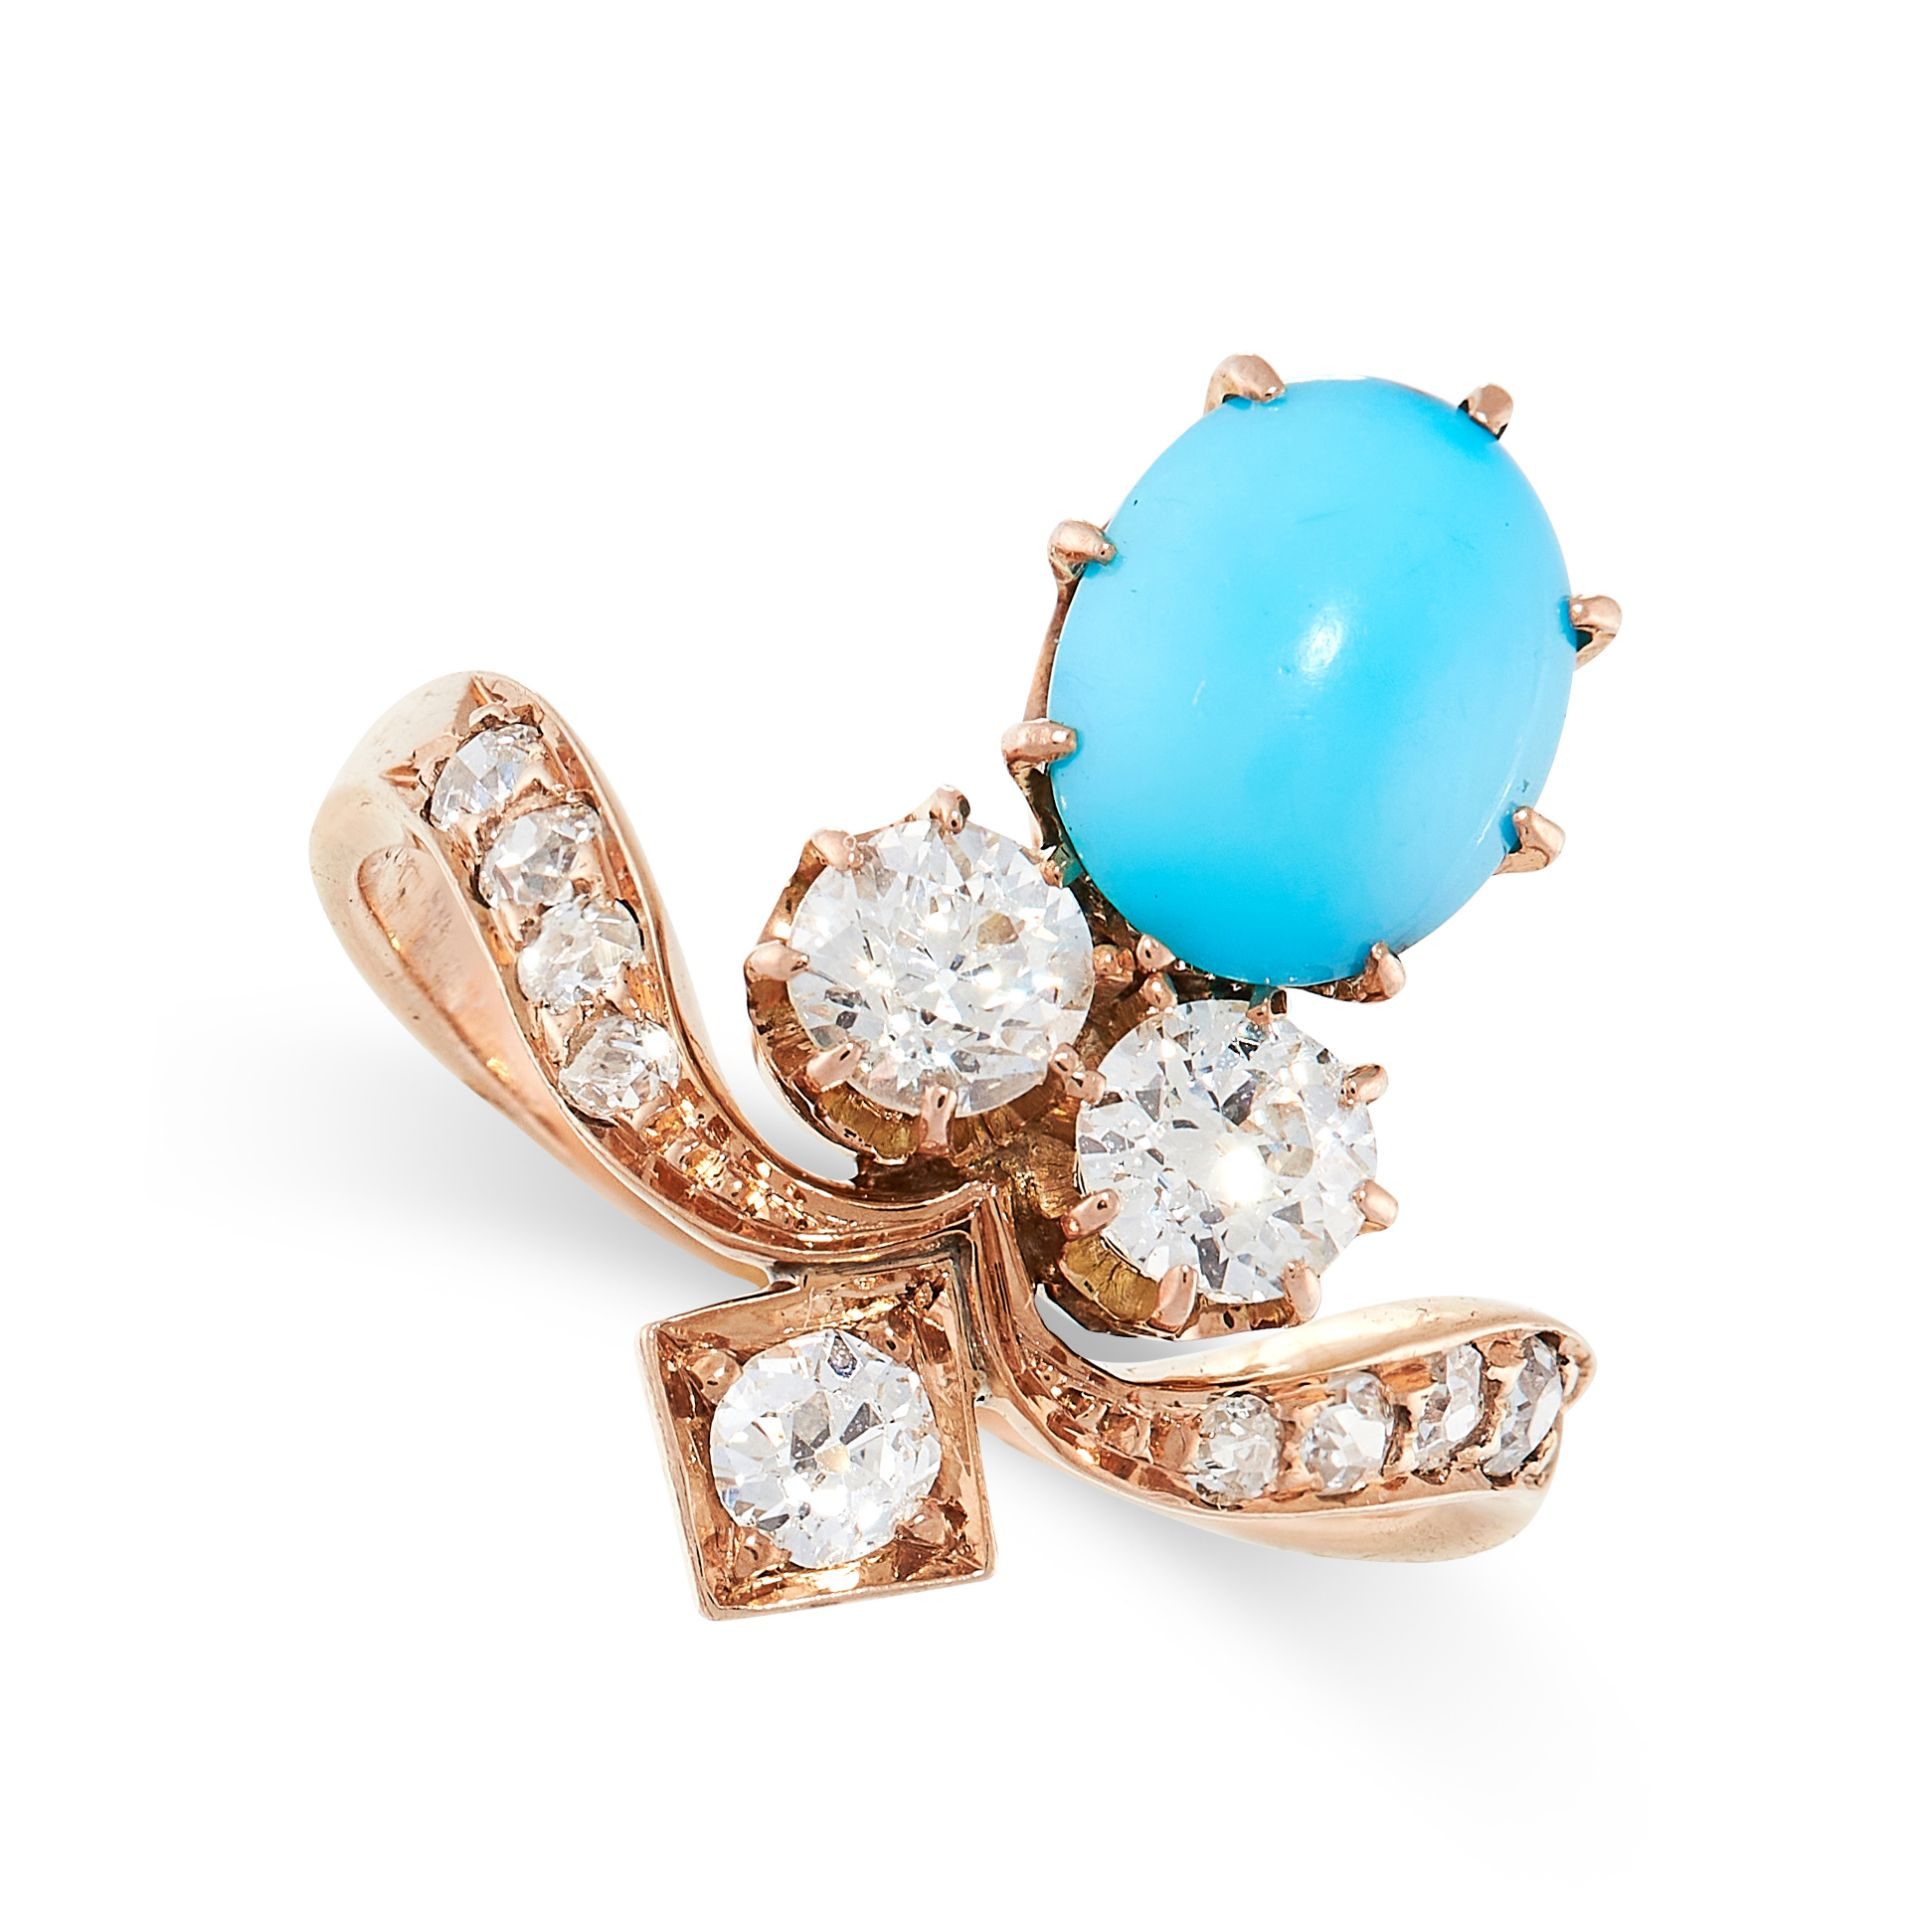 AN ANTIQUE TURQUOISE AND DIAMOND TIARA RING in yellow gold, the stylised band set with old cut